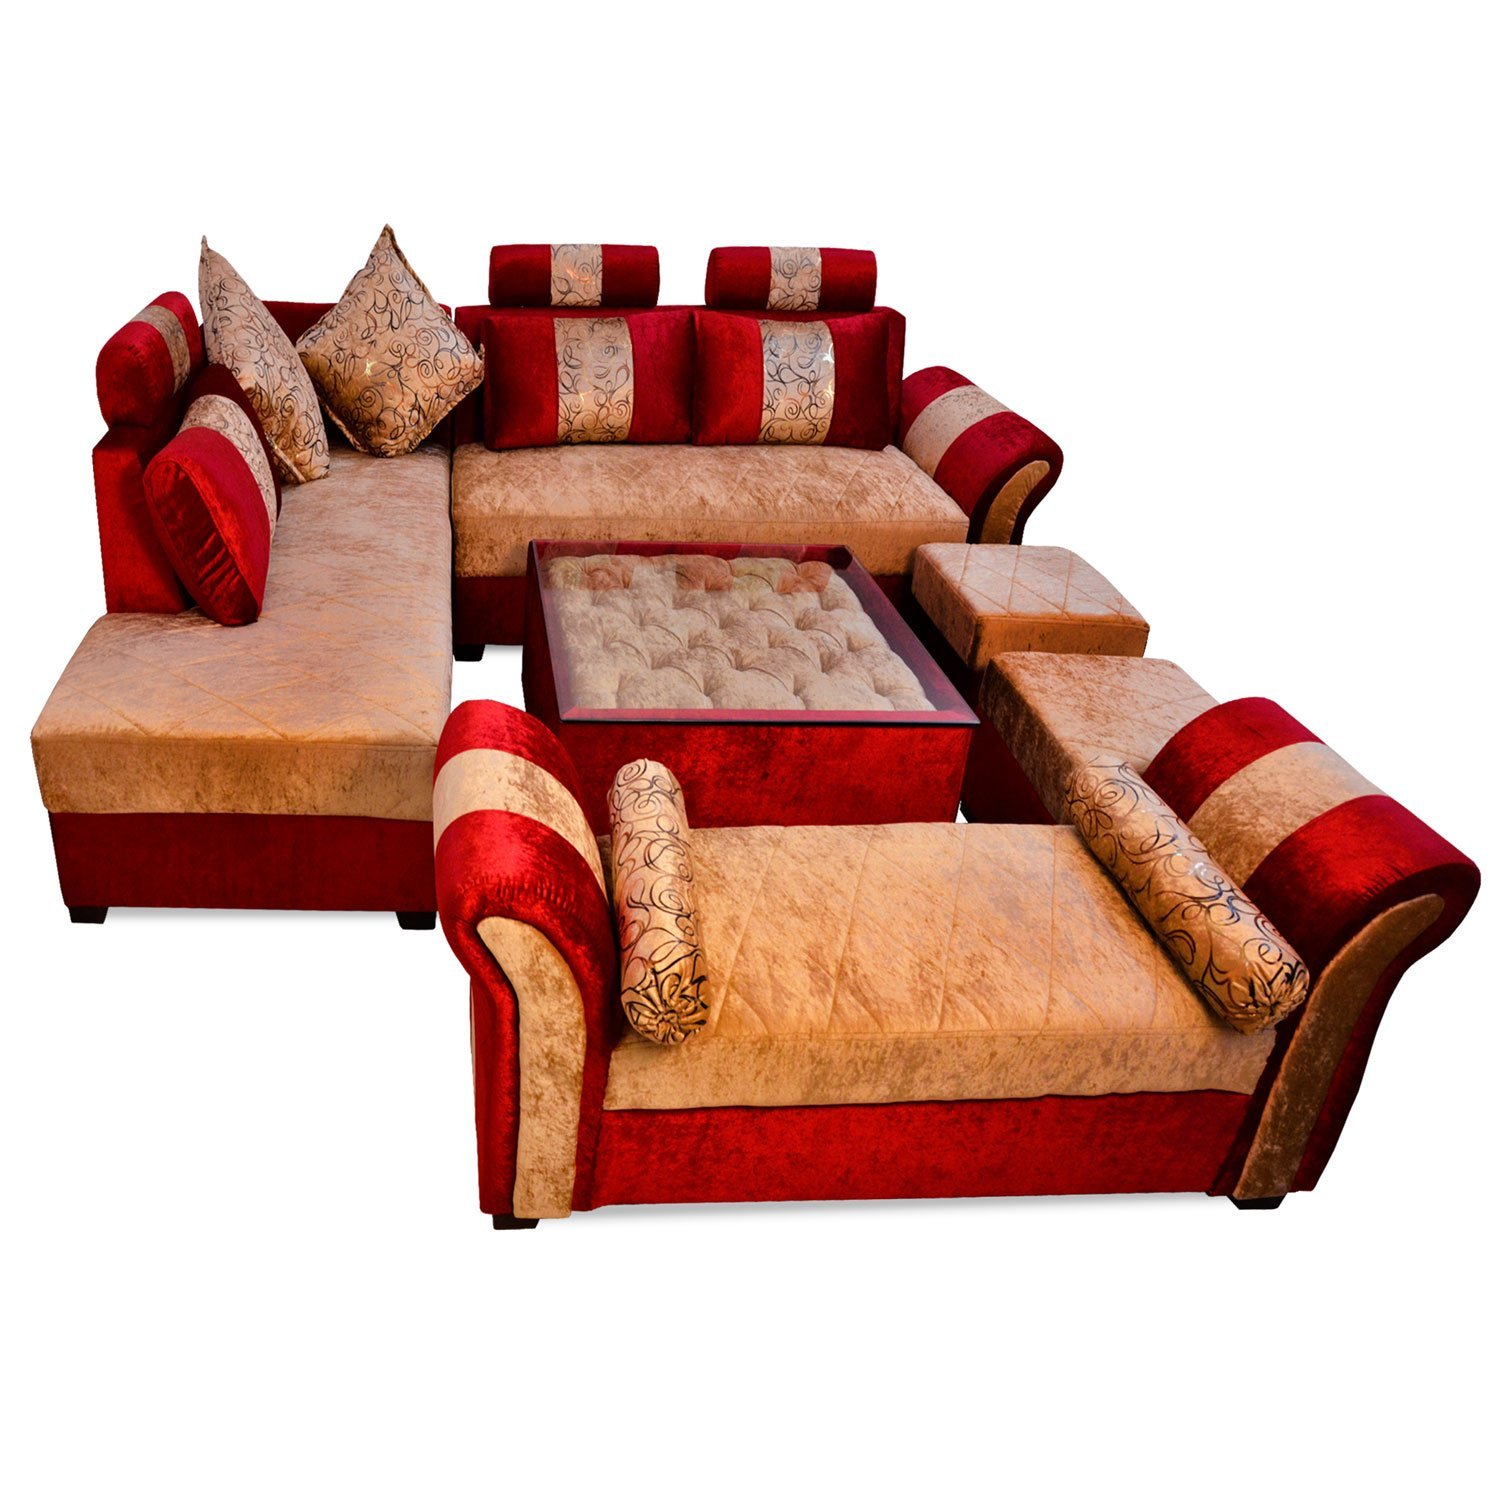 Cane Sofa Set Price In Delhi: Sofa Set In Delhi Ncr